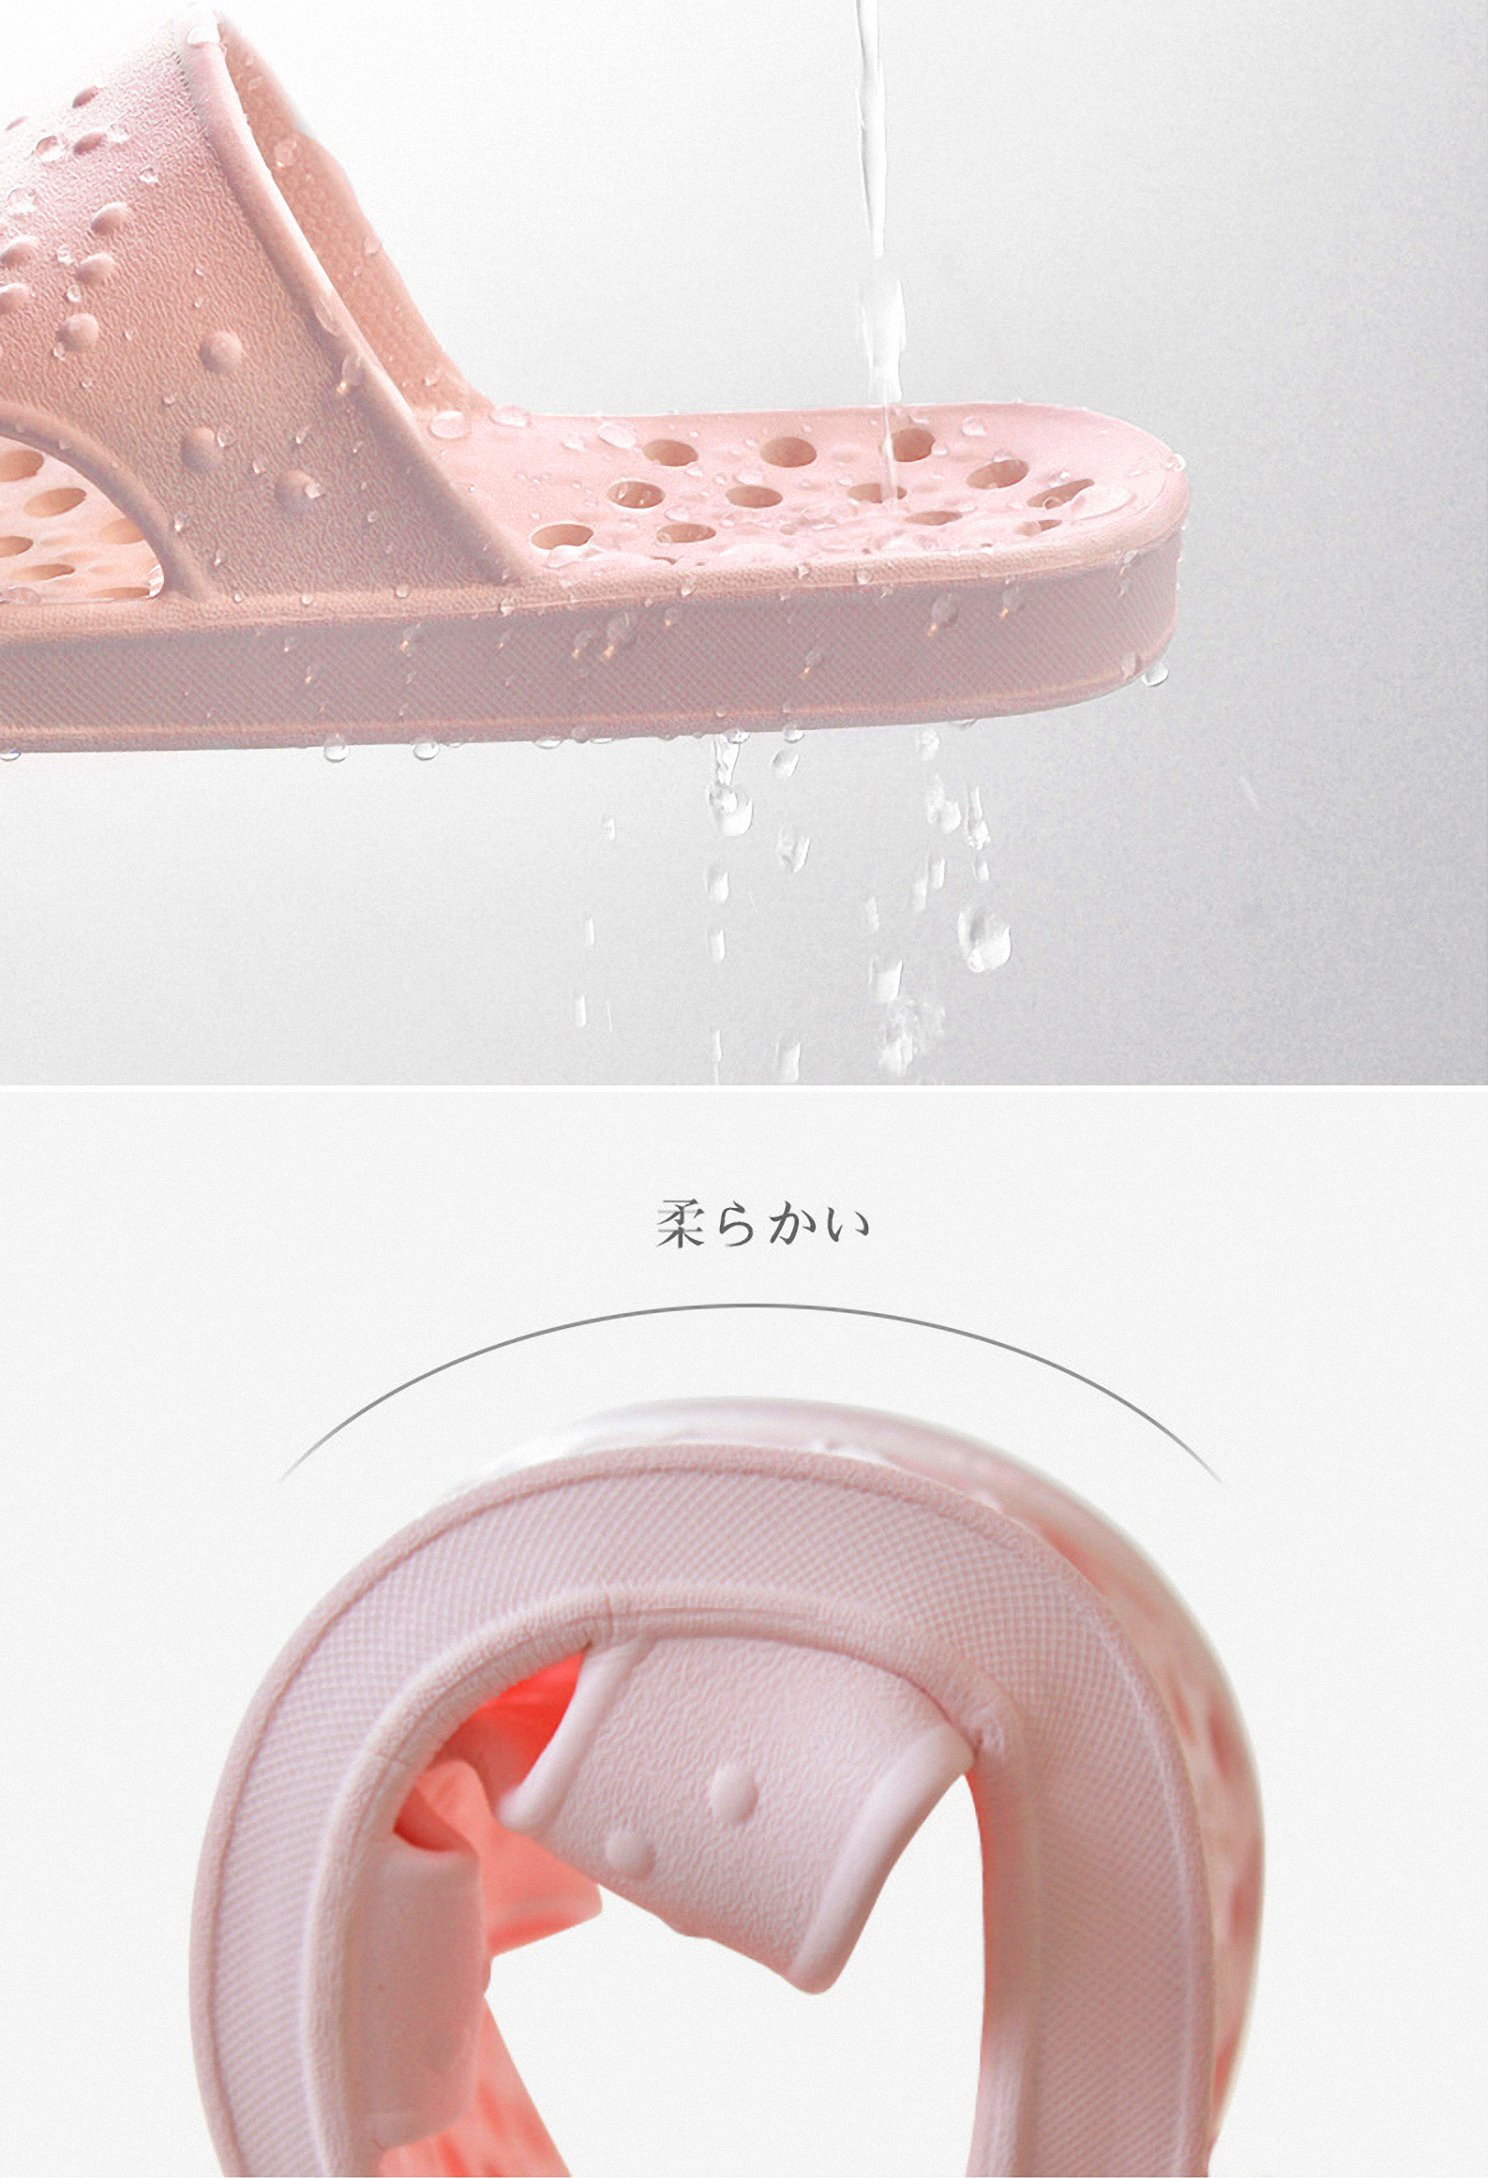 30fbbc326e61 Shower Sandal Slippers Quick Drying Bathroom Slippers Gym Slippers Soft  Sole Open Toe House Slippers